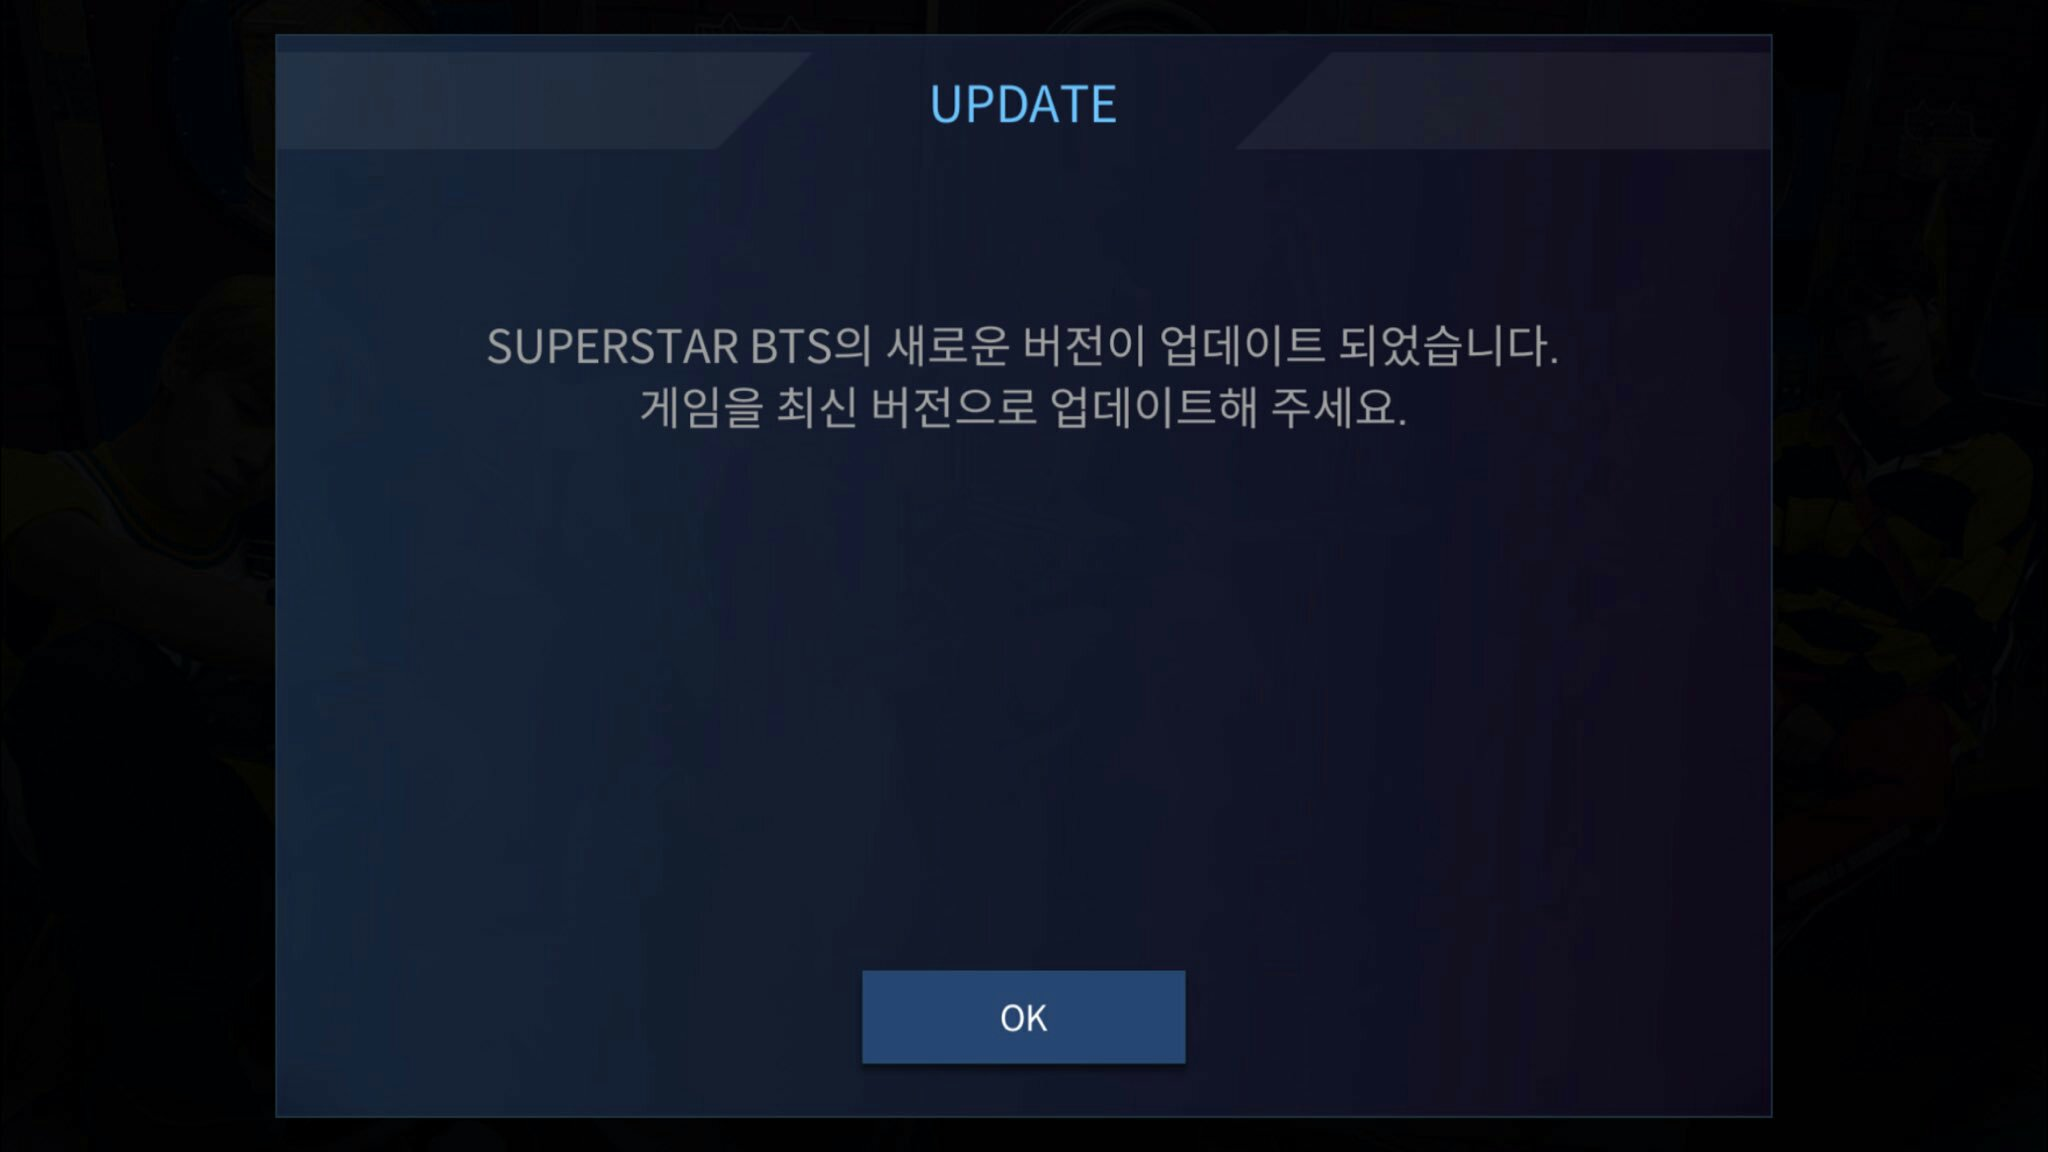 supersutar bts アップデート android